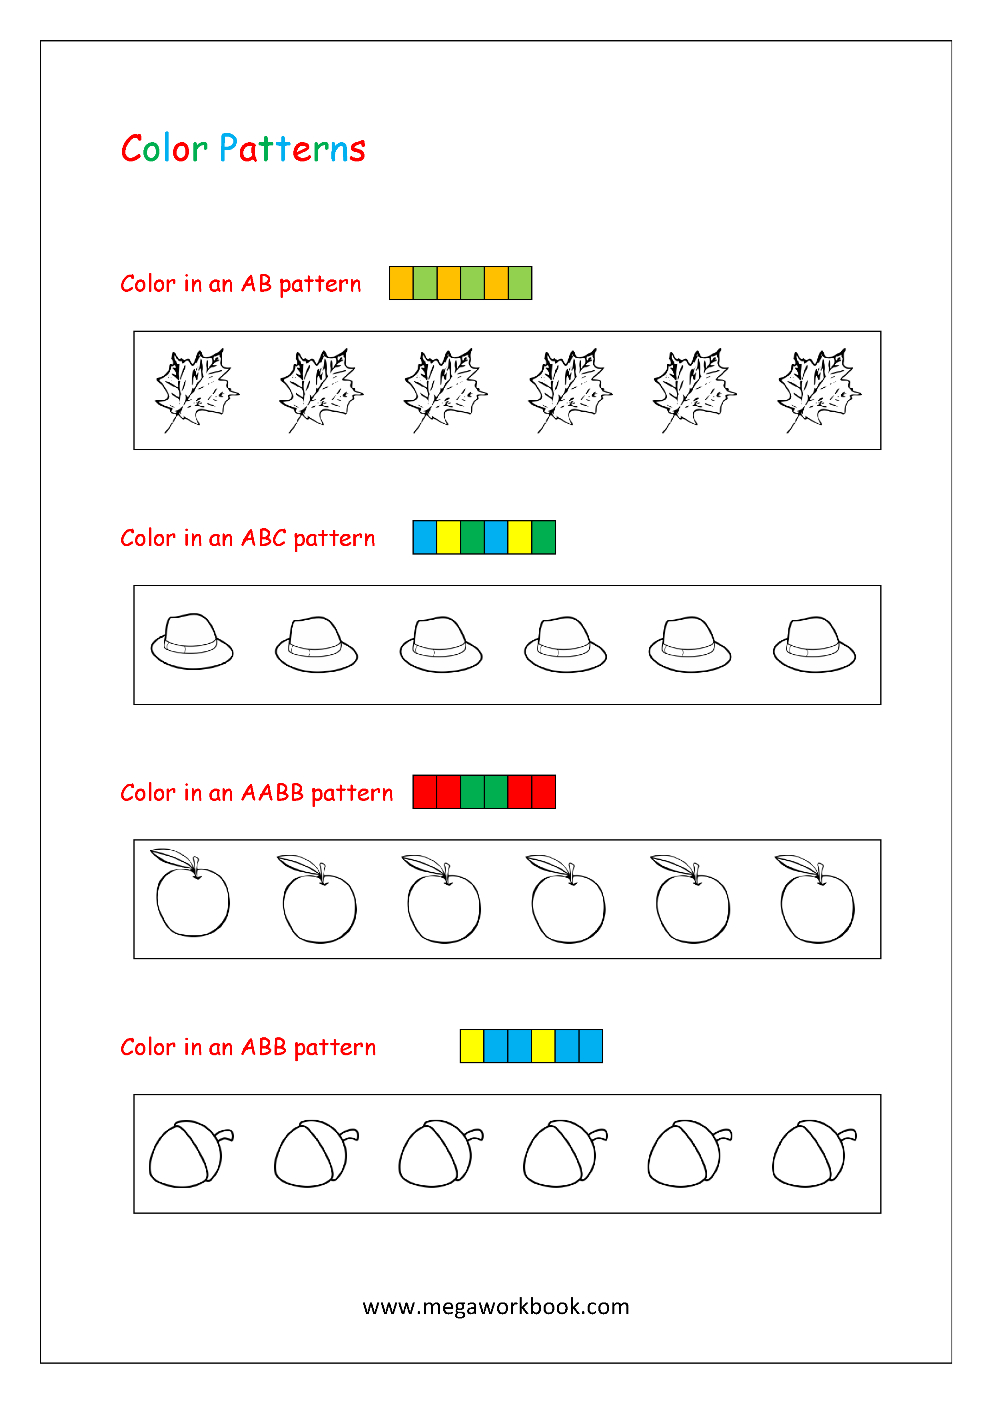 Free Printable Pattern Recognition Worksheets - Color Patterns | Free Printable Ab Pattern Worksheets